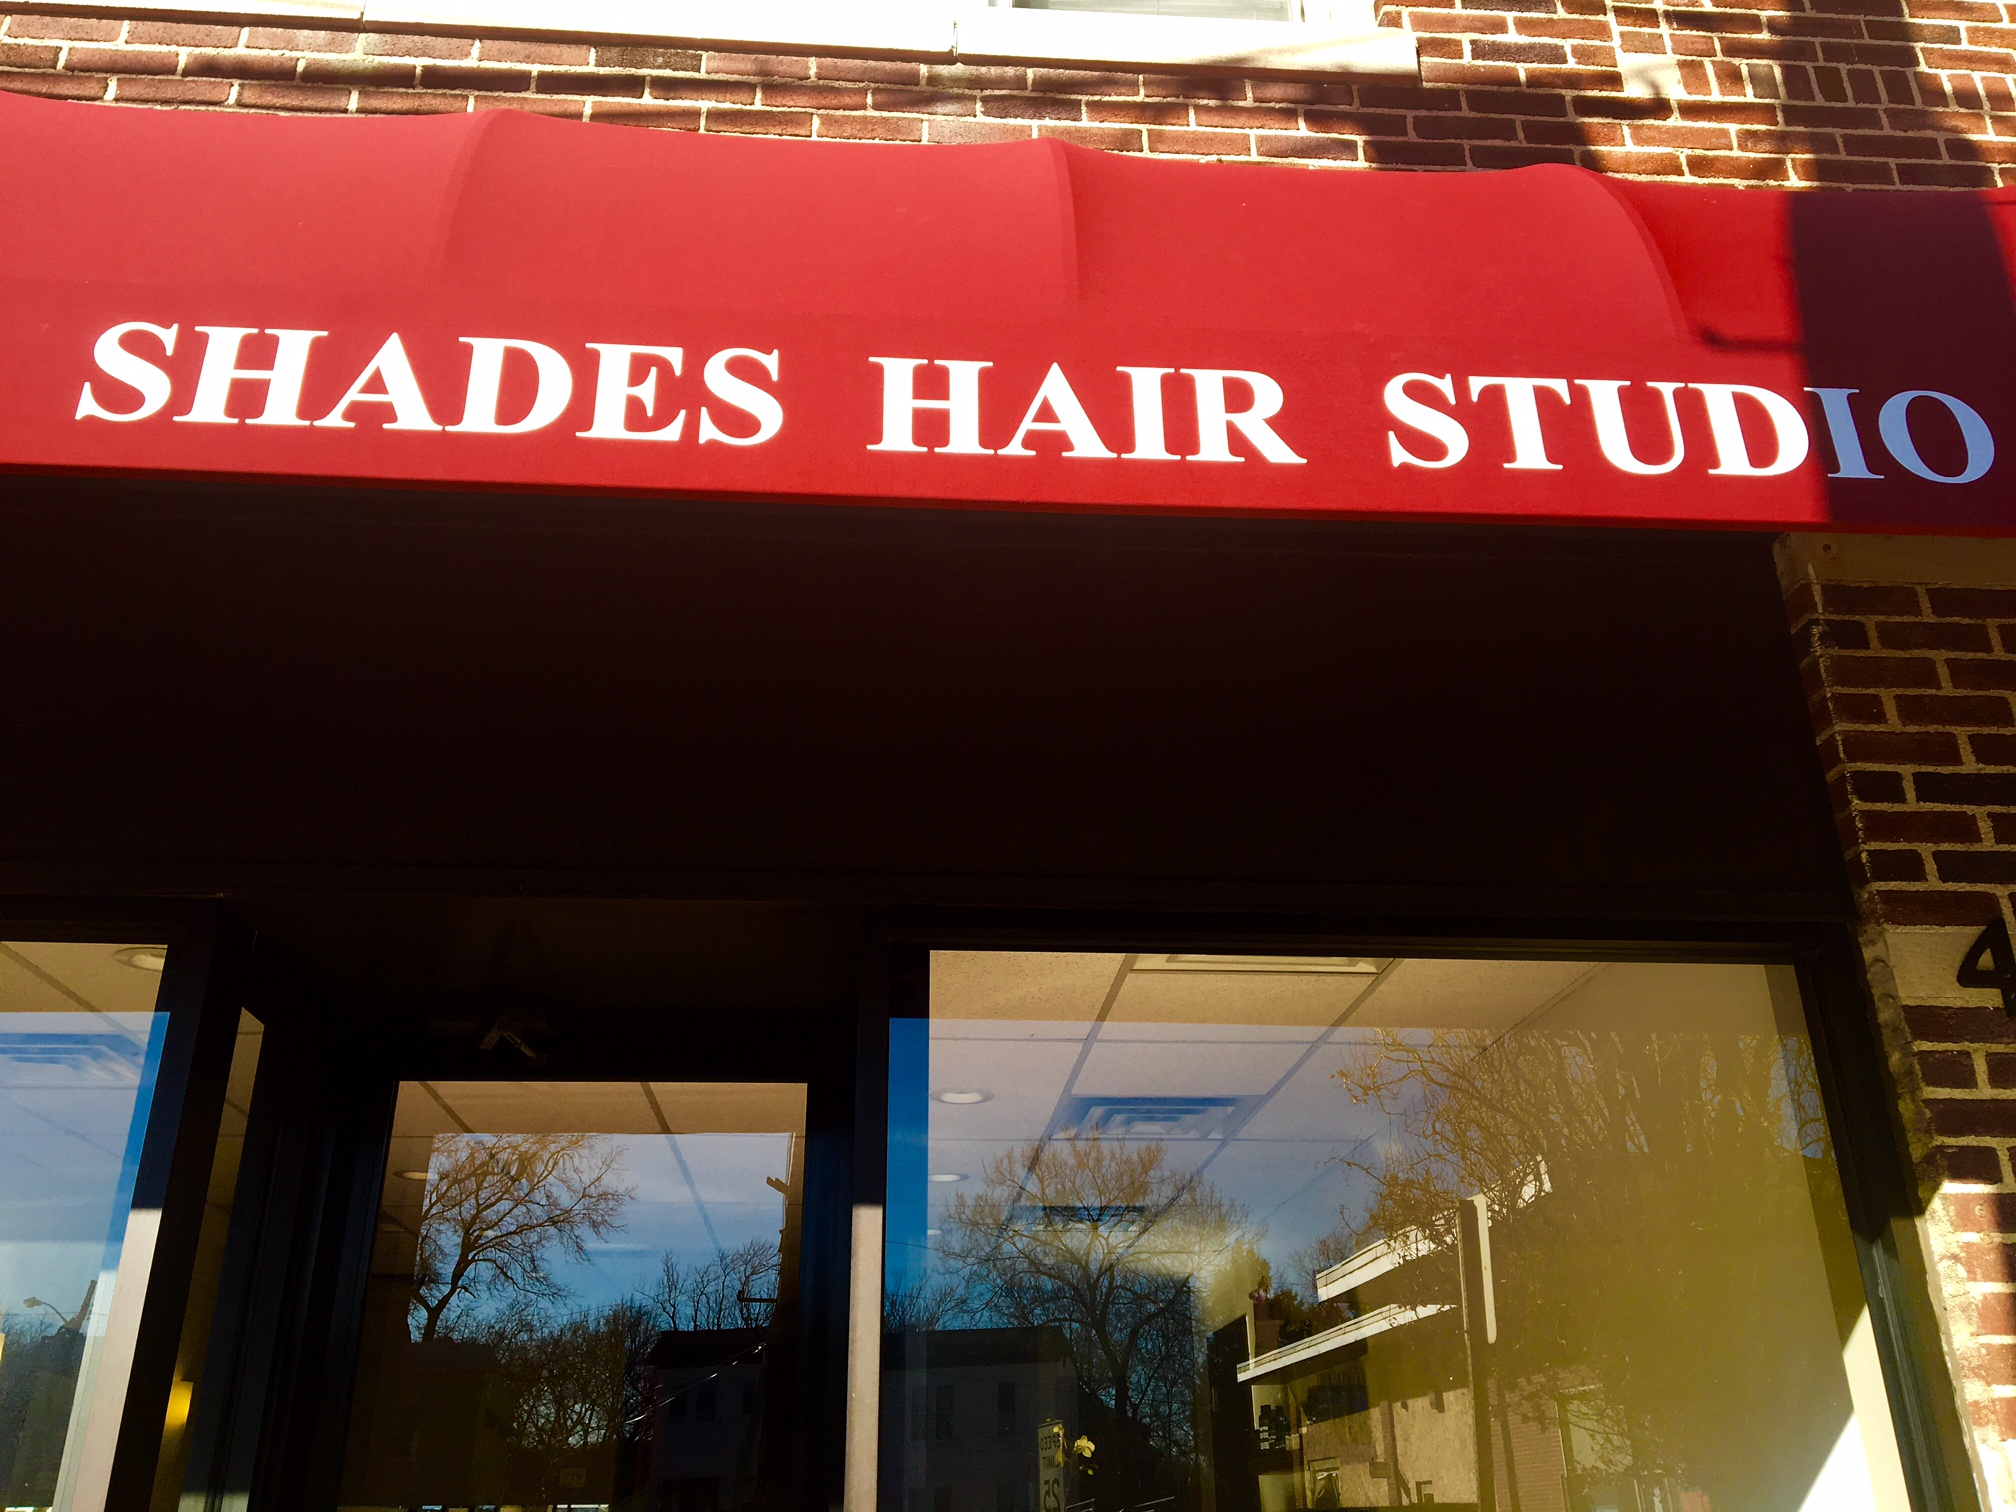 Shades Hair Studio